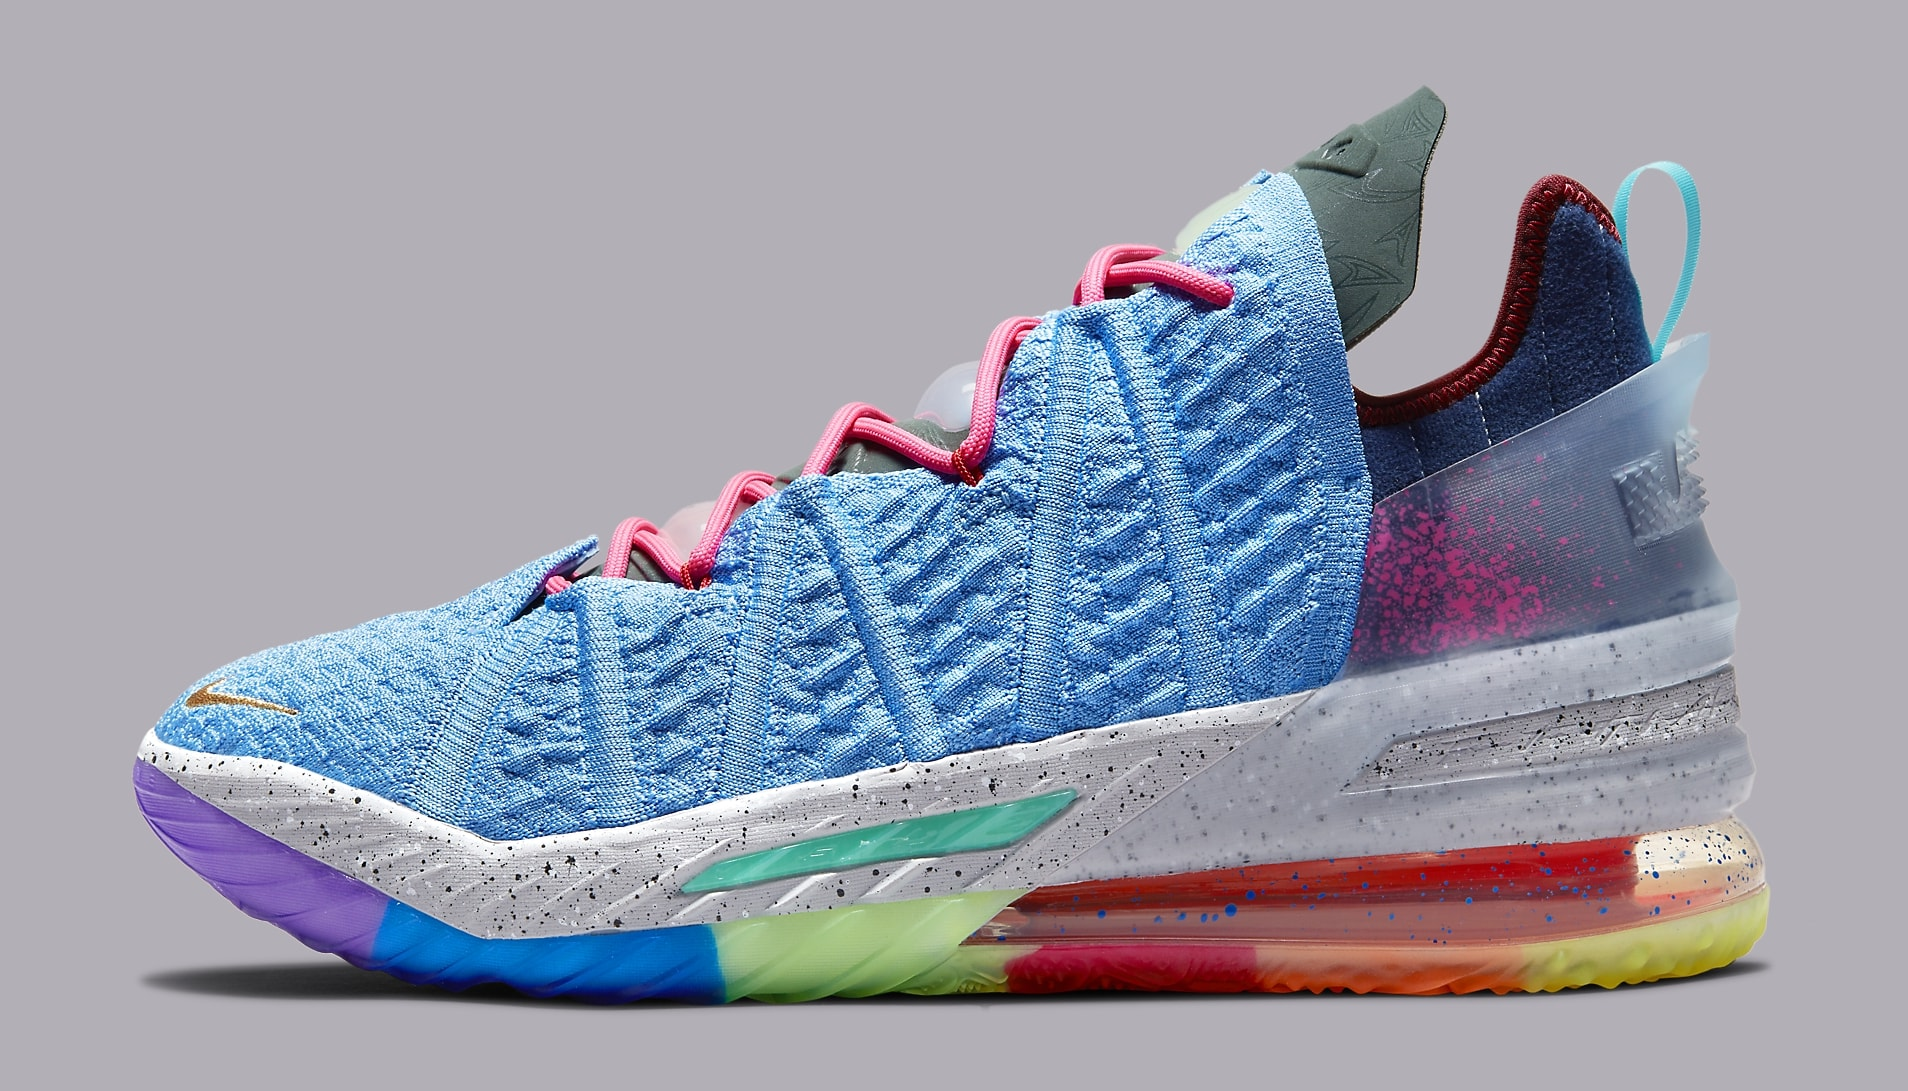 Nike LeBron 18 'Best 1-9' DM2813 400 Lateral